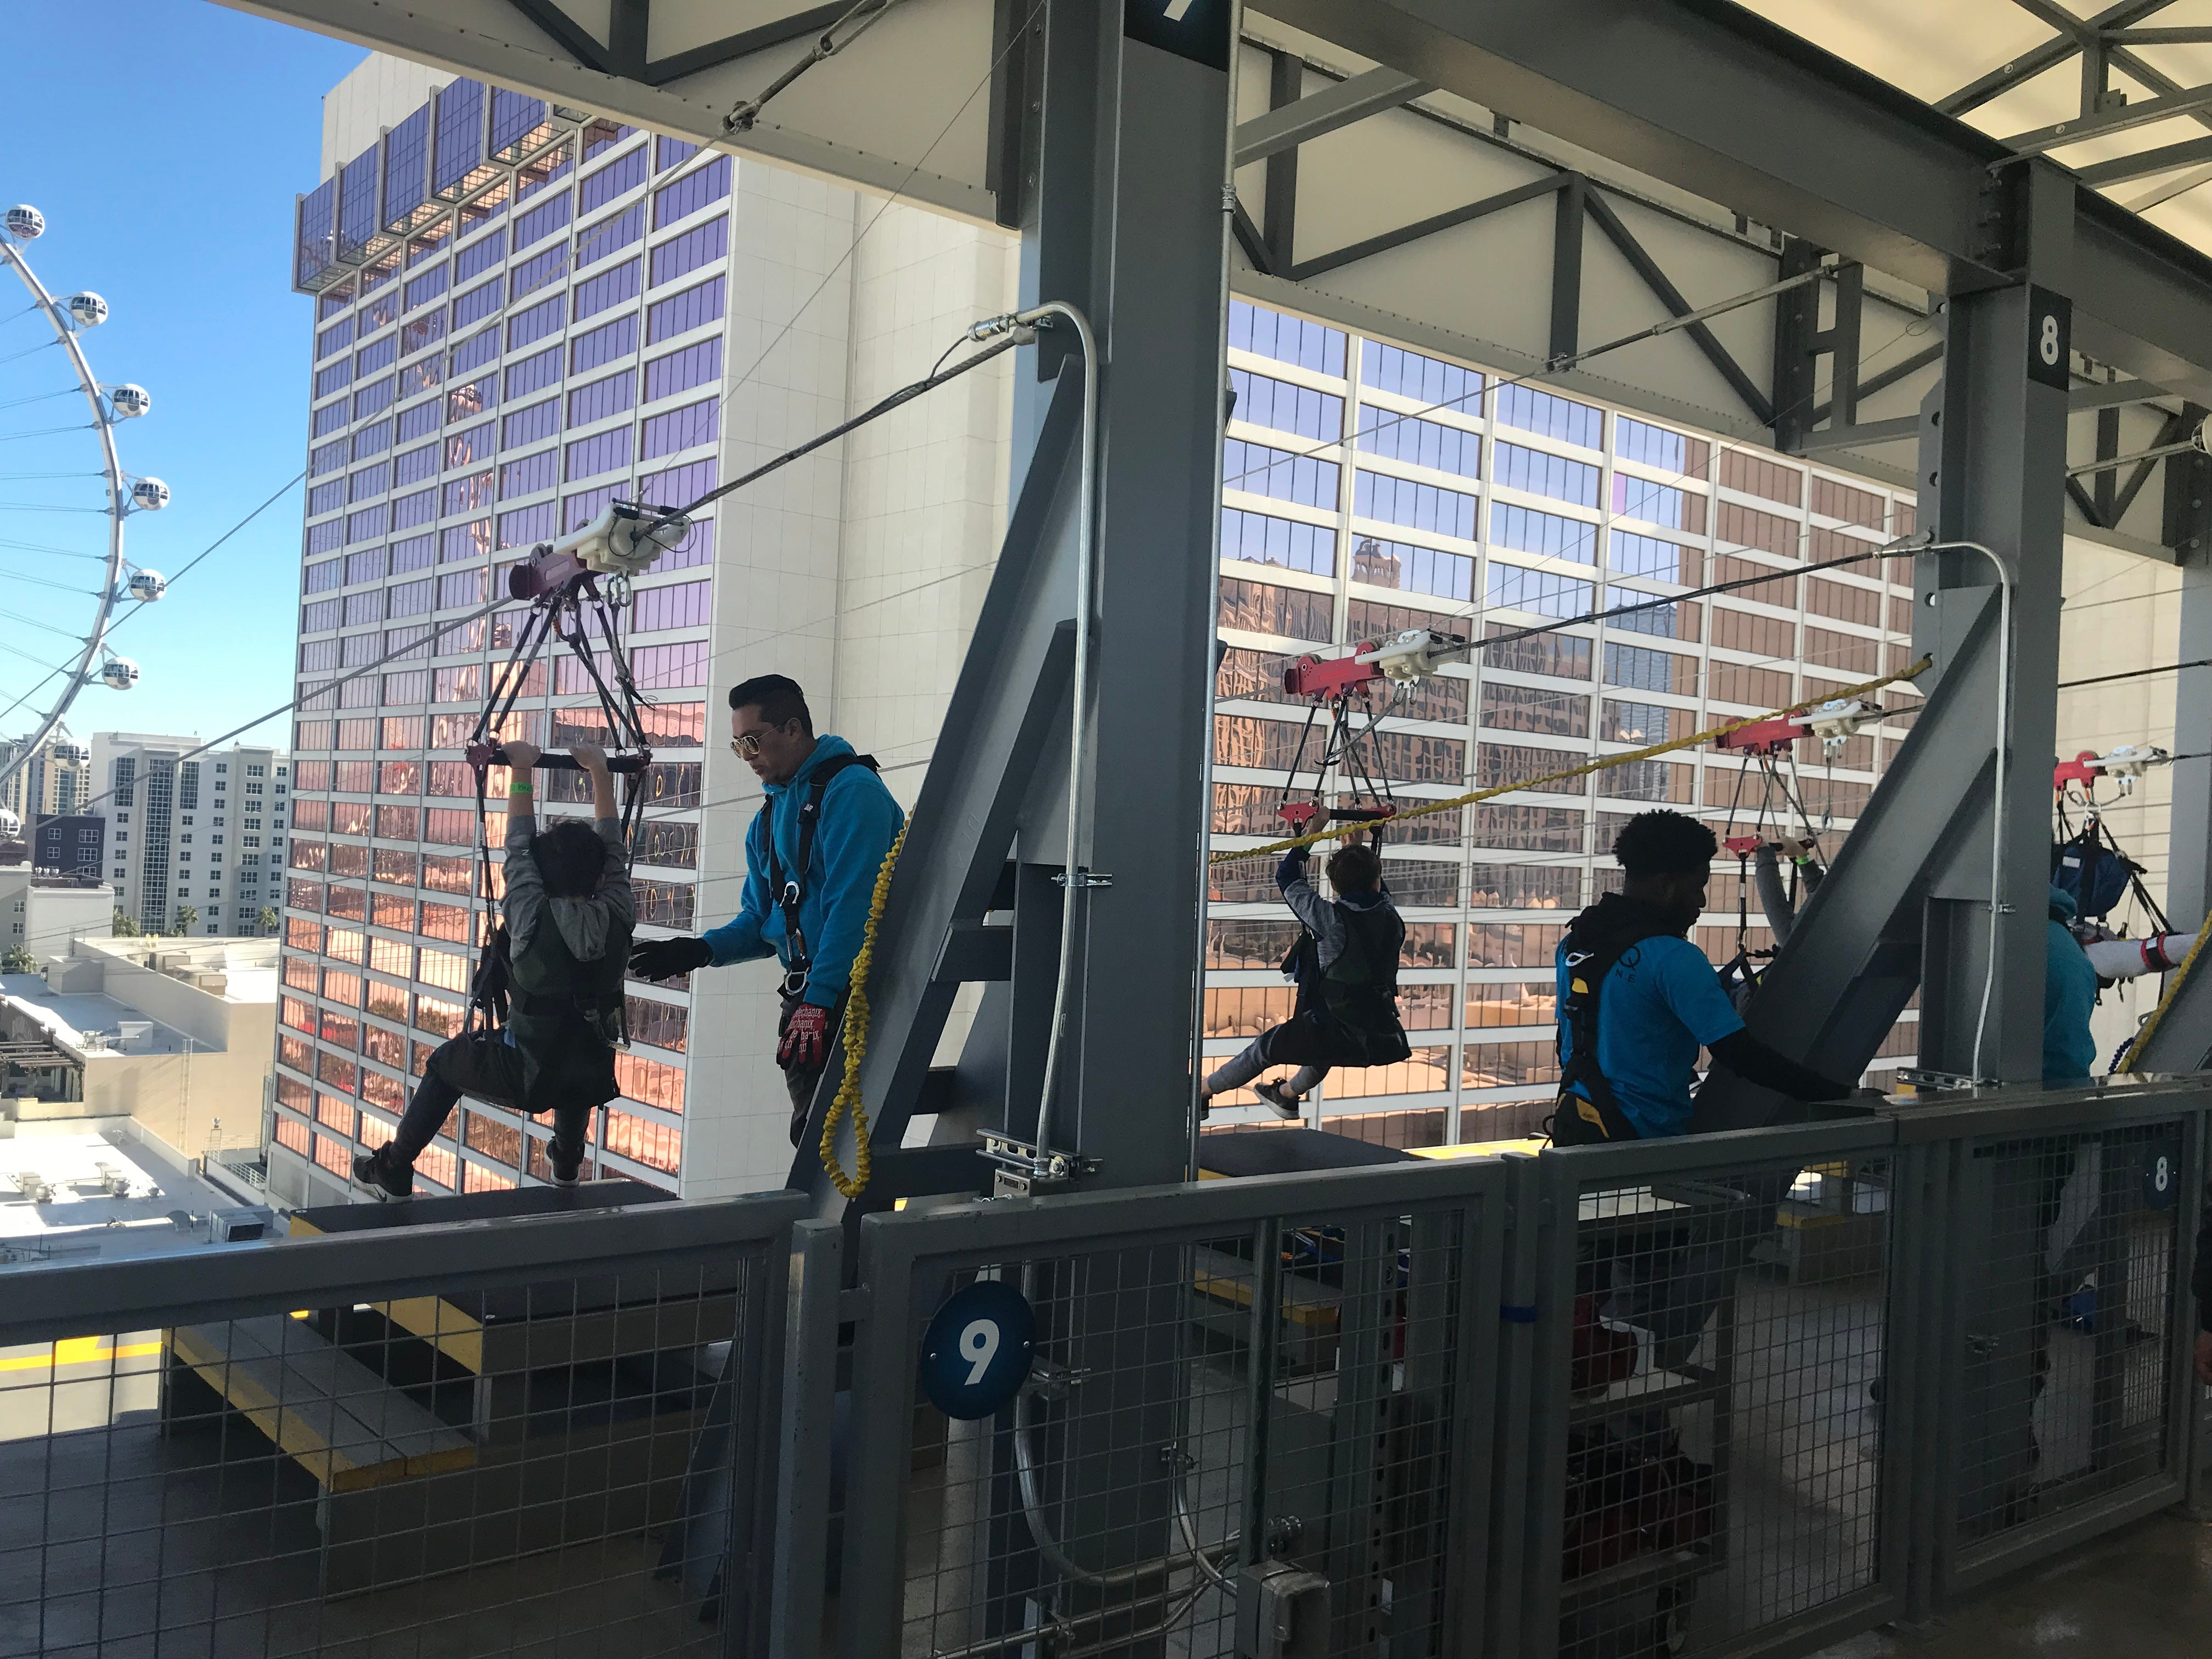 Visitors to the Fly Linq zipline have two options: seated or superhero style.